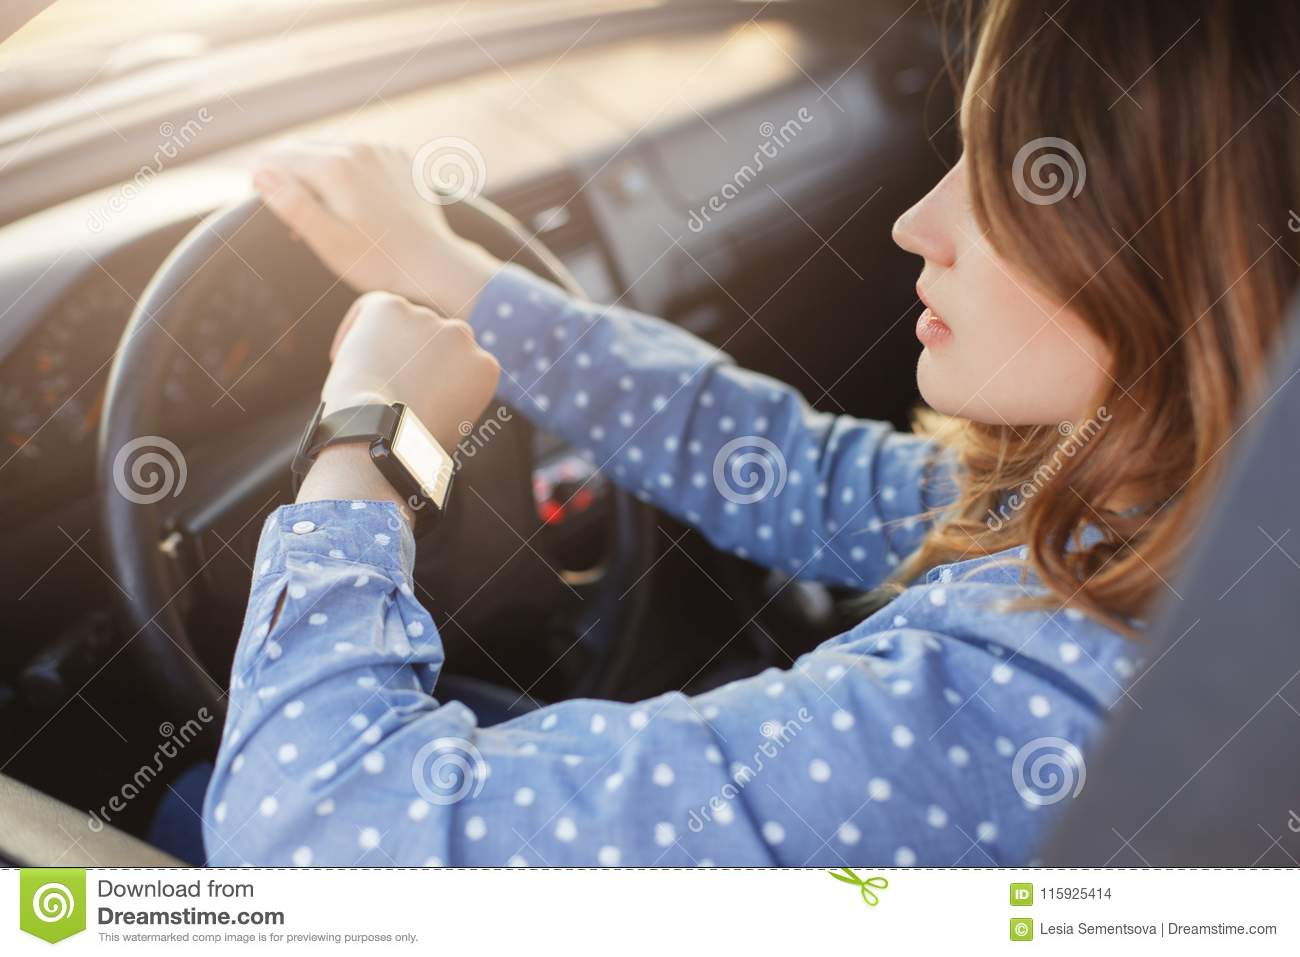 Busy young woman drives car and looks at watch, stuck in traffic jam, hurries to work, being nervous and stressed, feels impatient